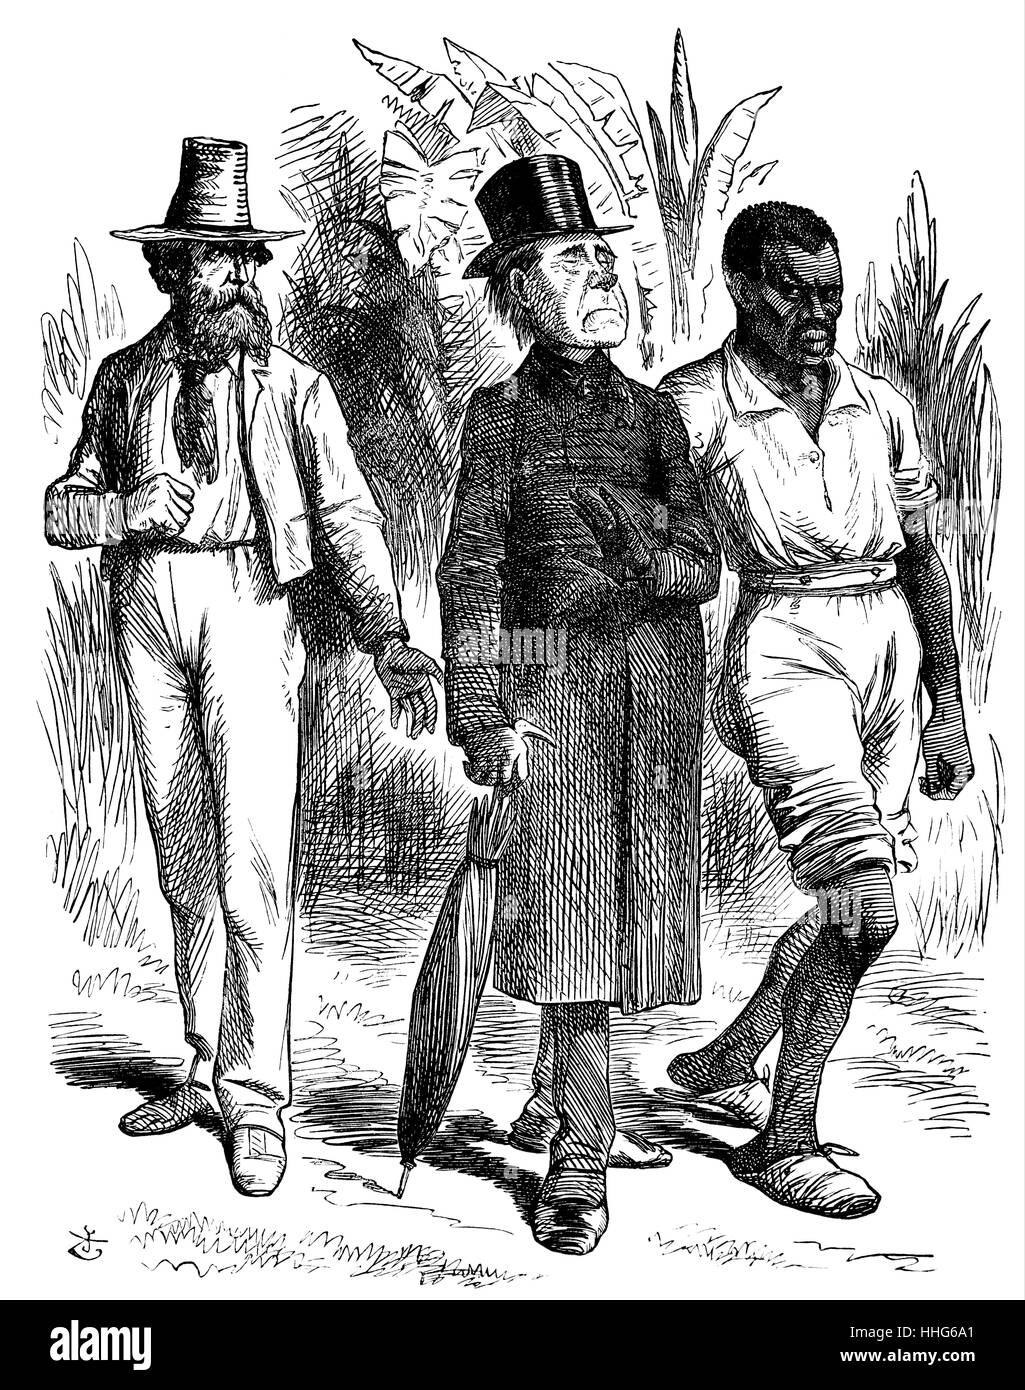 The Jamaica Question. White Planter. 'Am I Not a Man and Brother Too, Mr Stiggins?' - Stock Image